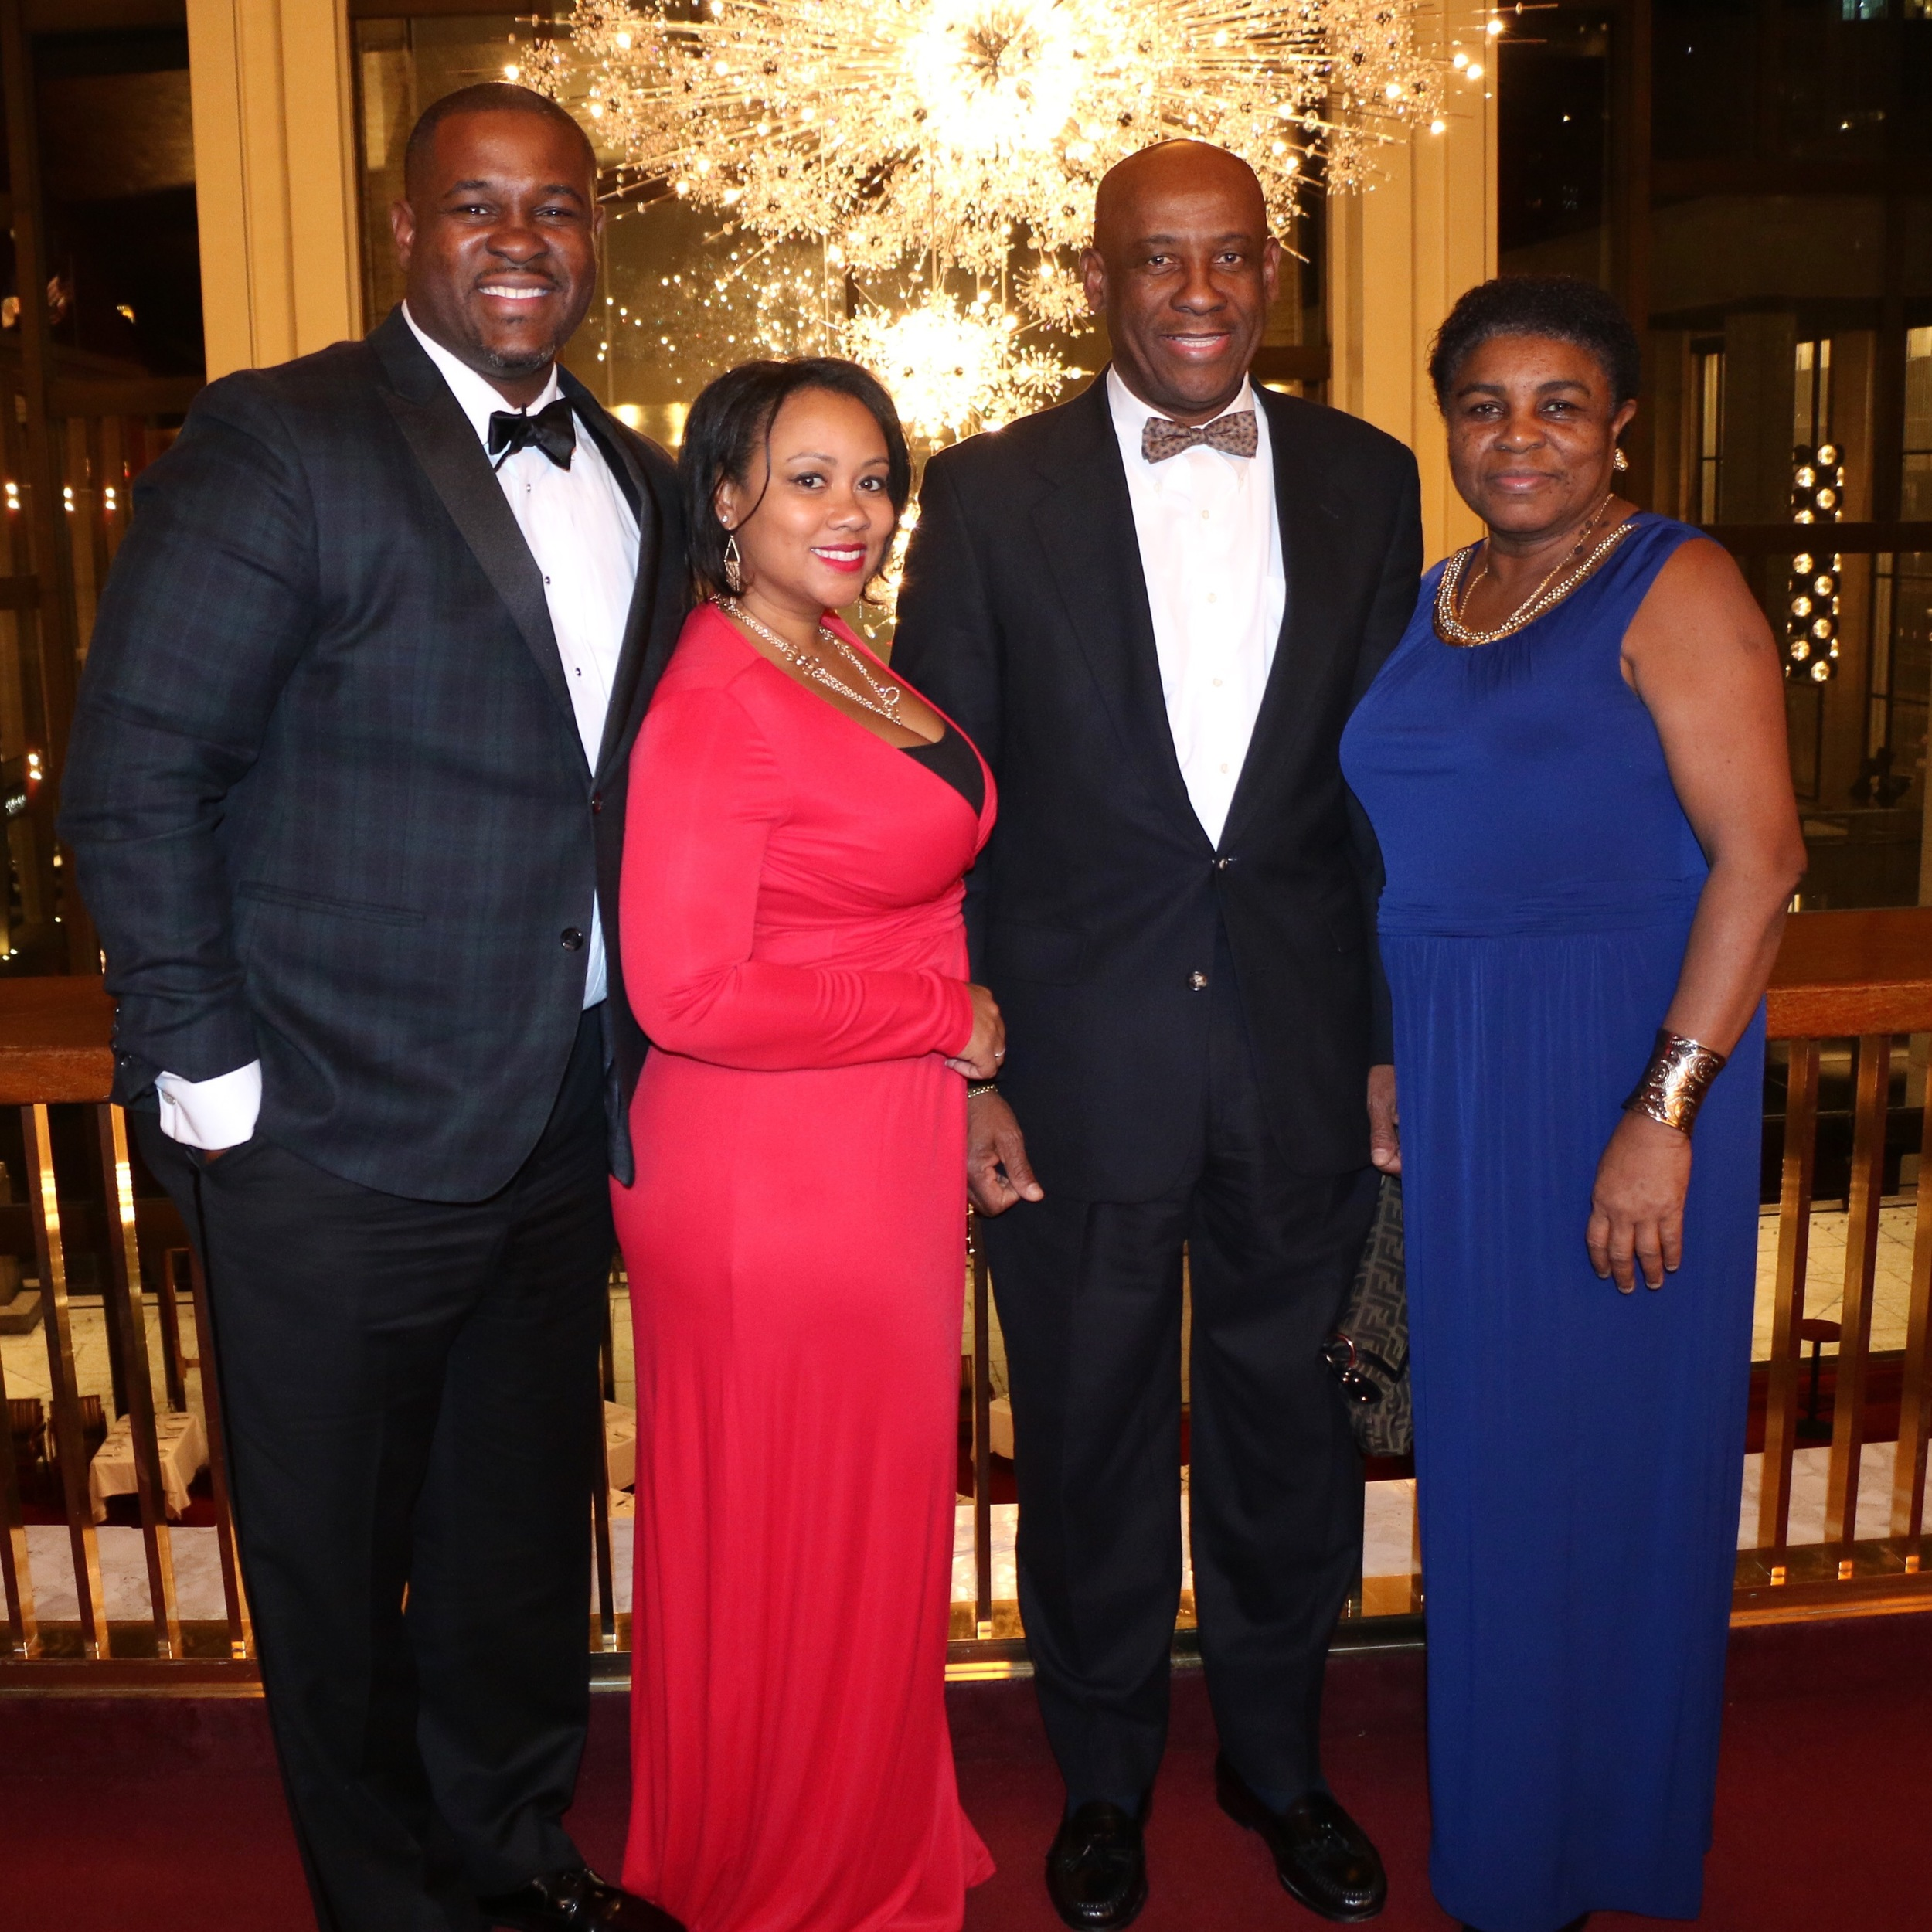 The Kinch Family at Lincoln Center